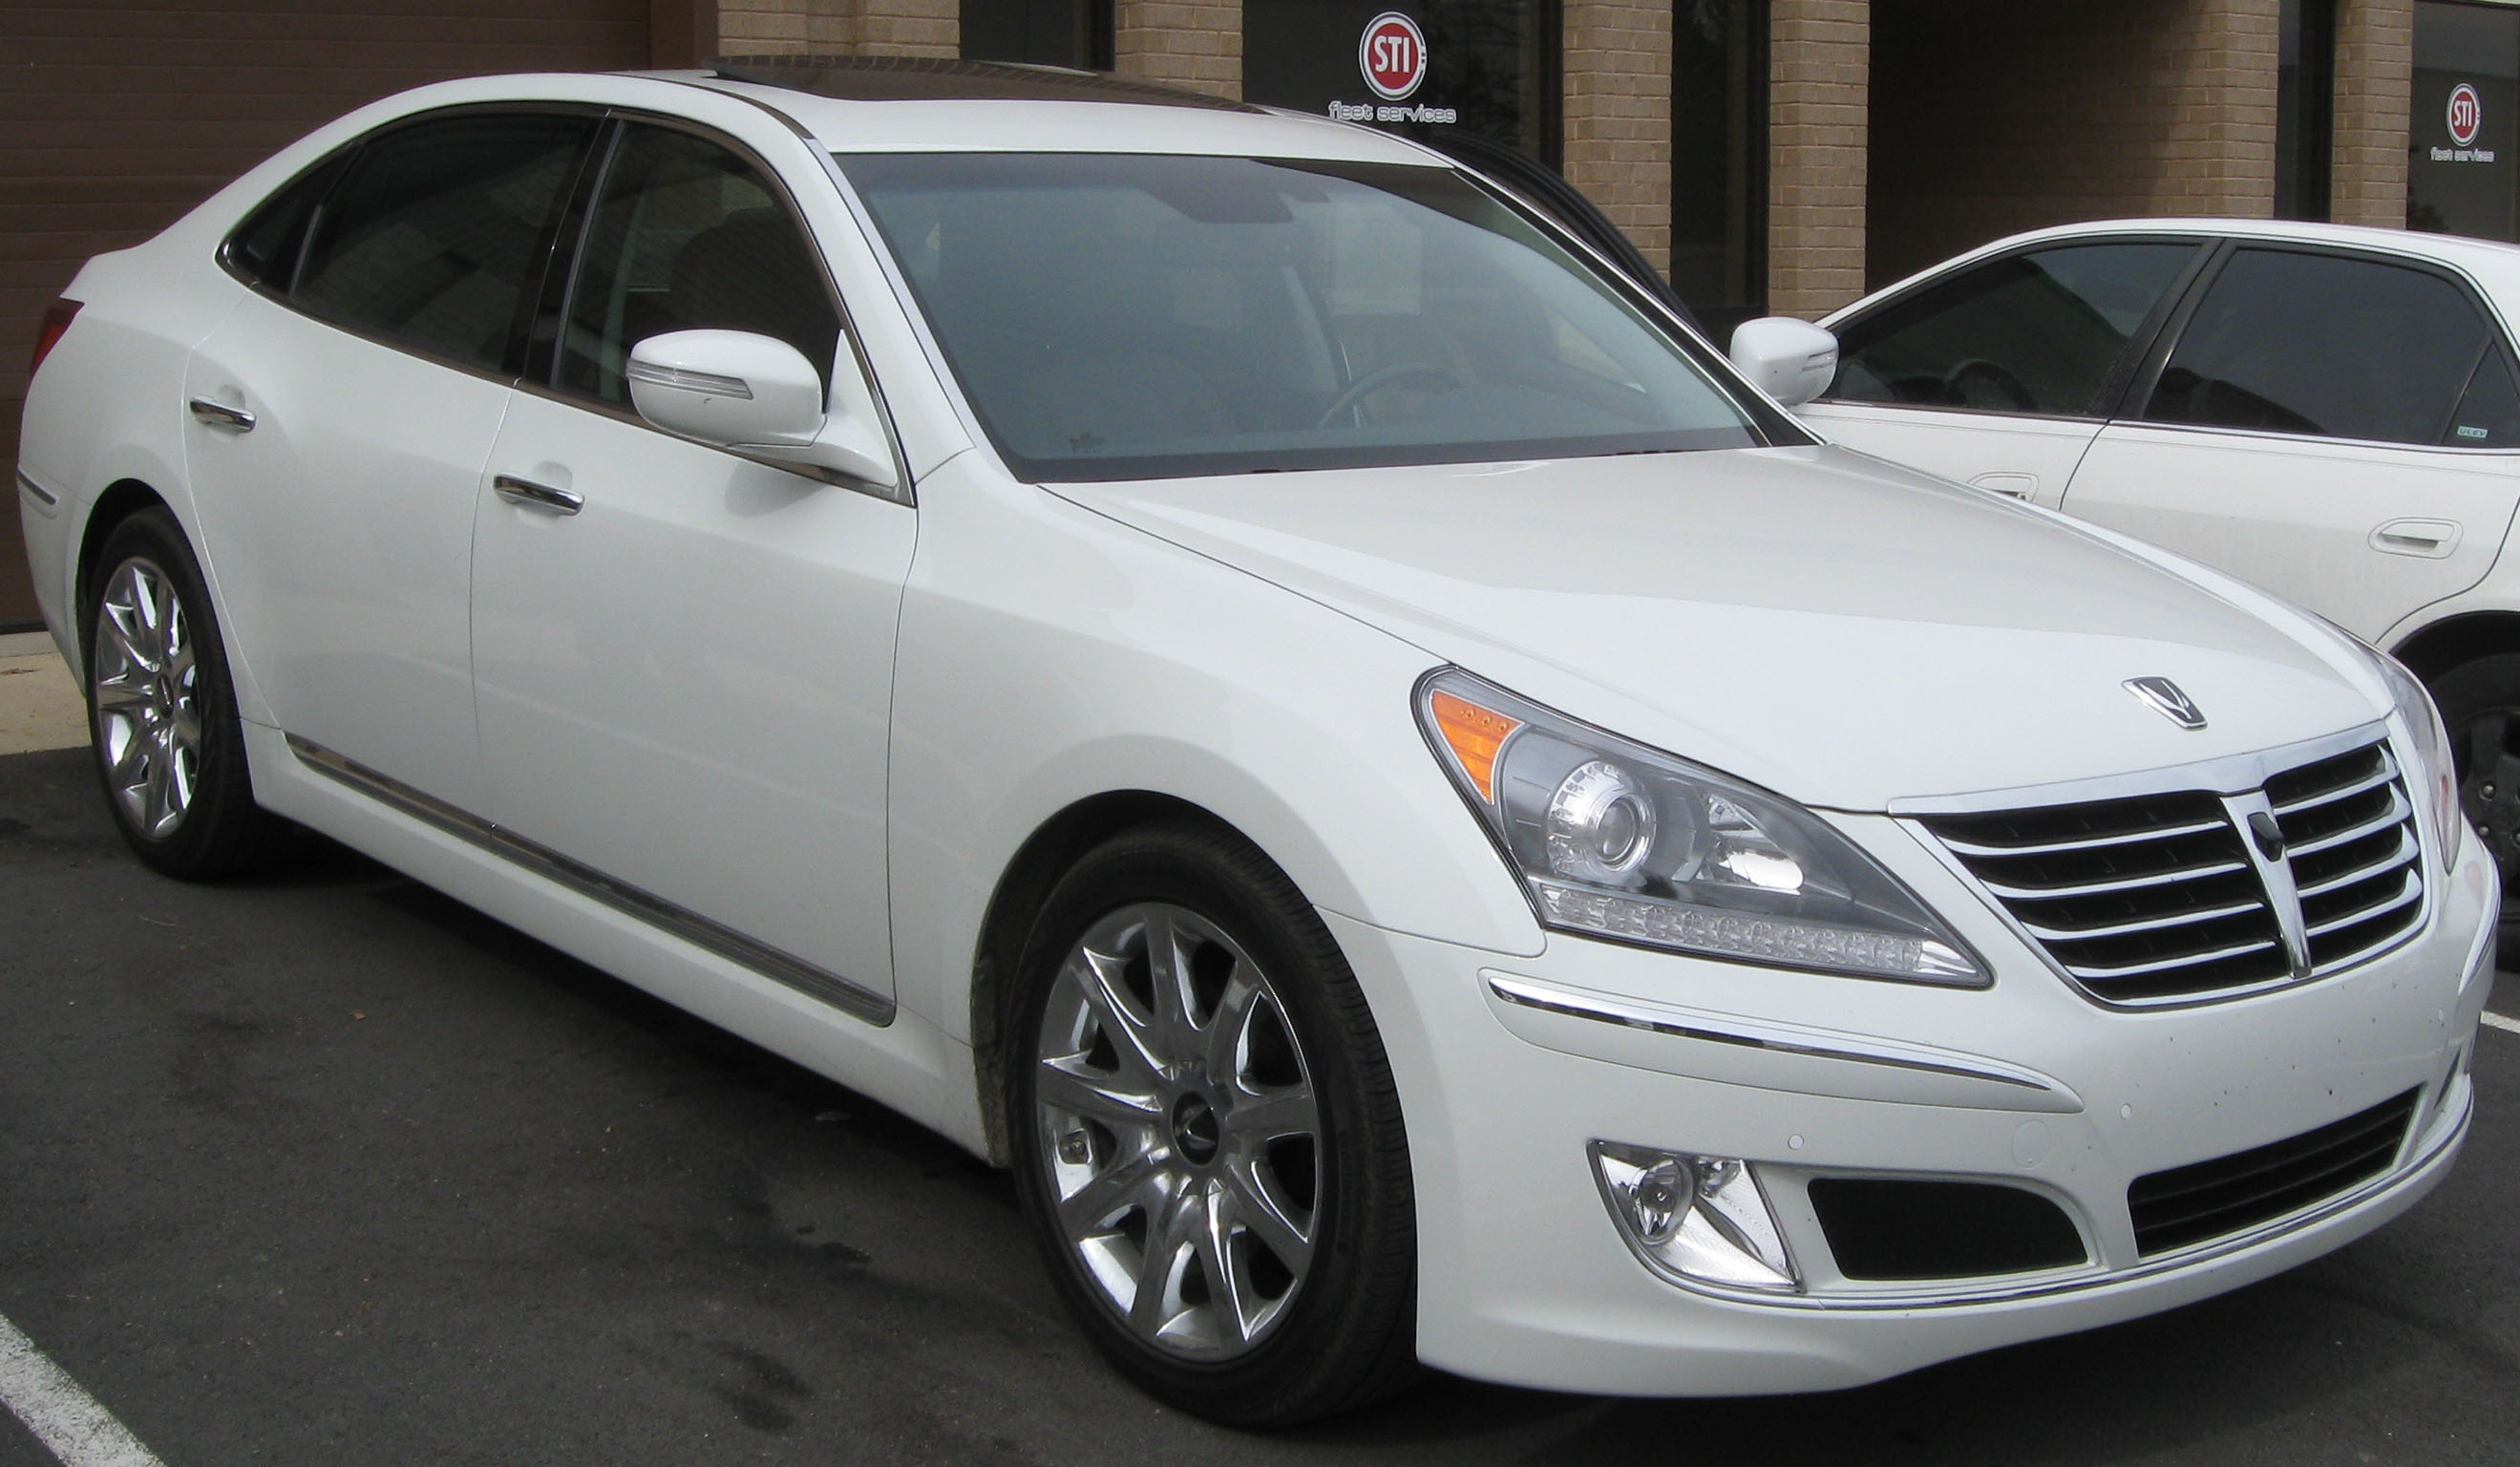 Pictures of hyundai equus #1